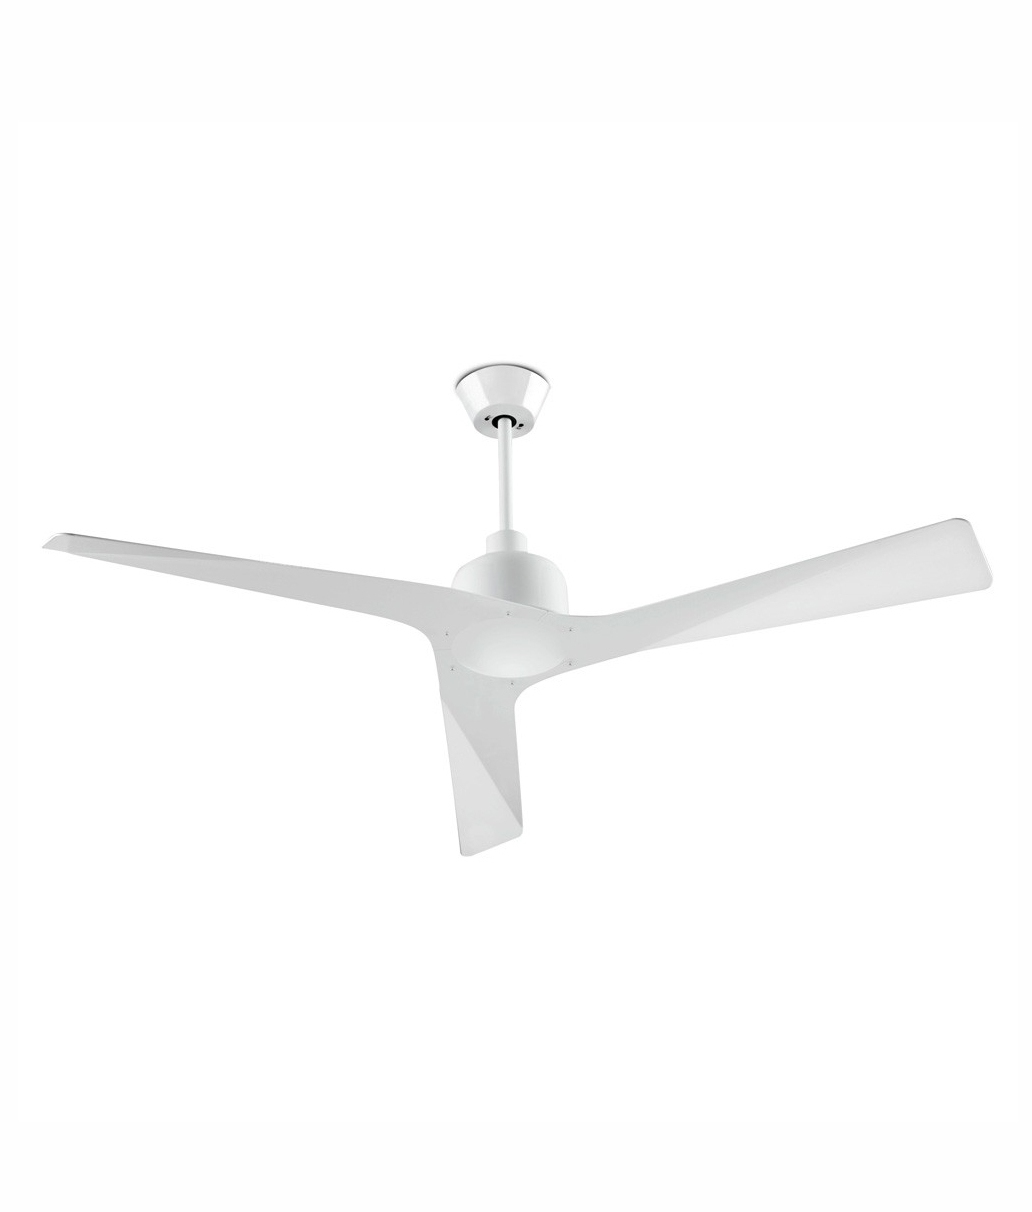 Ultra modern white ceiling fan Modern white ceiling fan